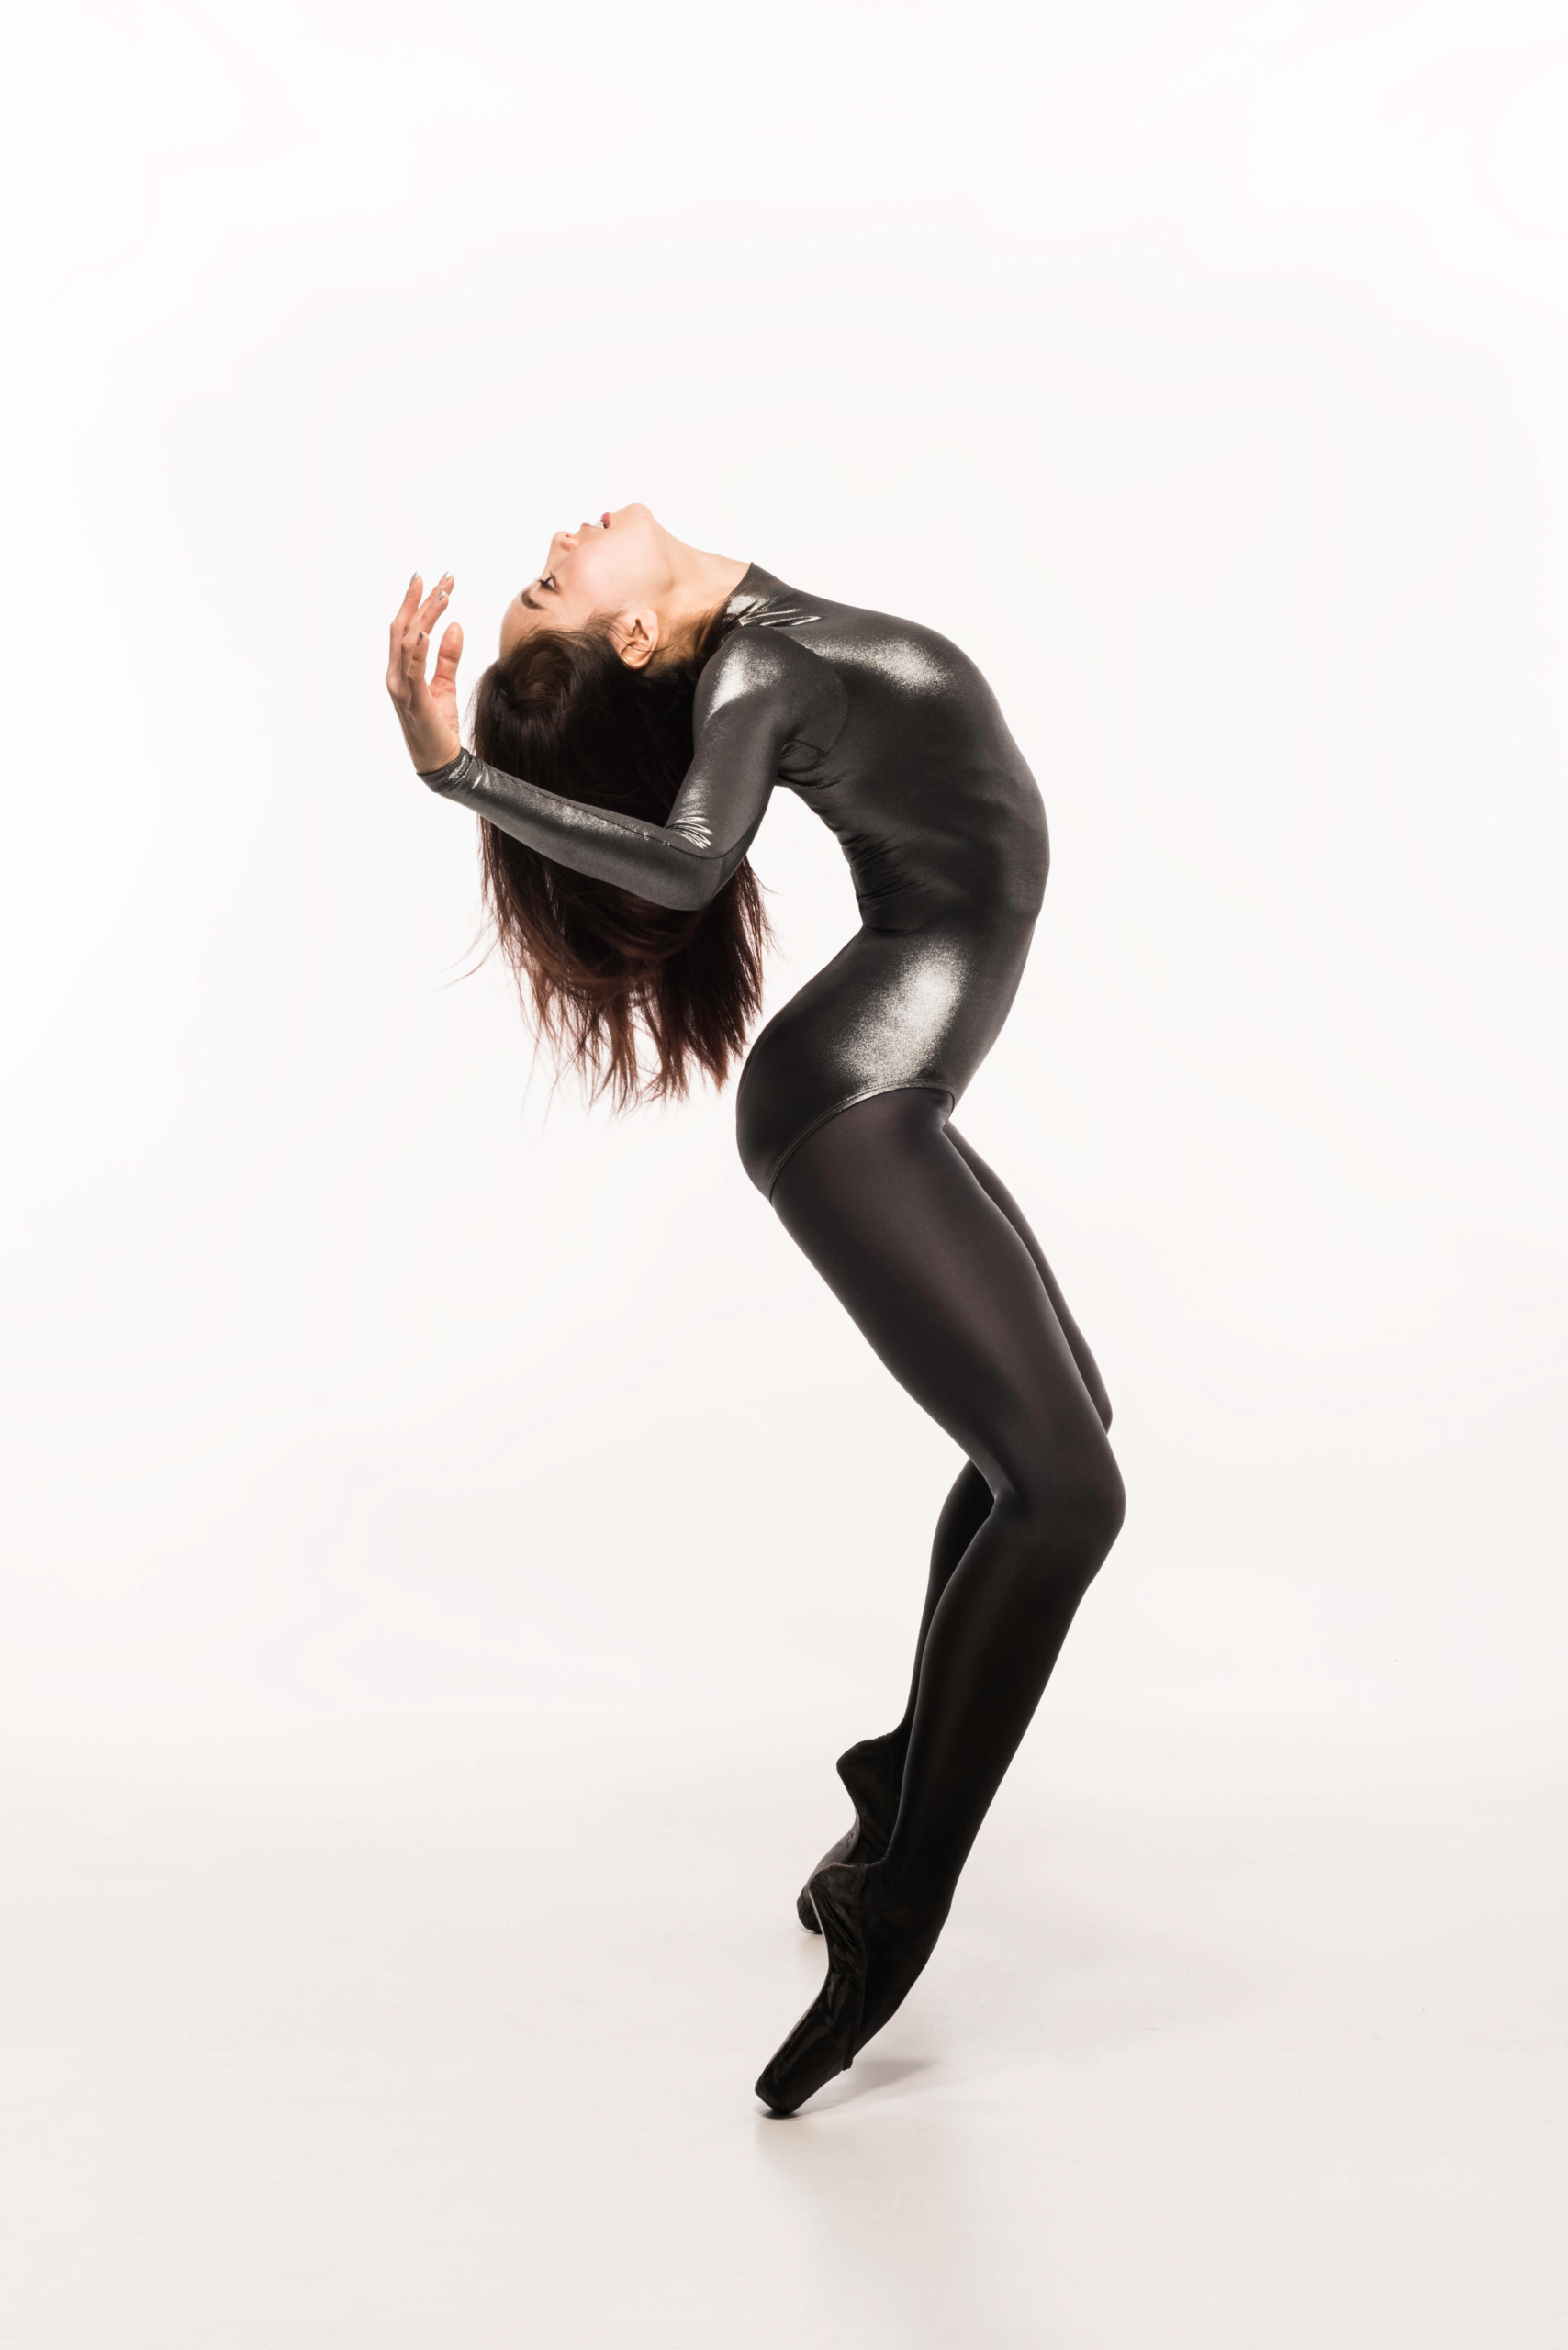 Seo Hye Han in Karole Armitage's Bitches Brew by Liza Voll, courtesy of Boston Ballet; Costume by Peter Speliopoulos.